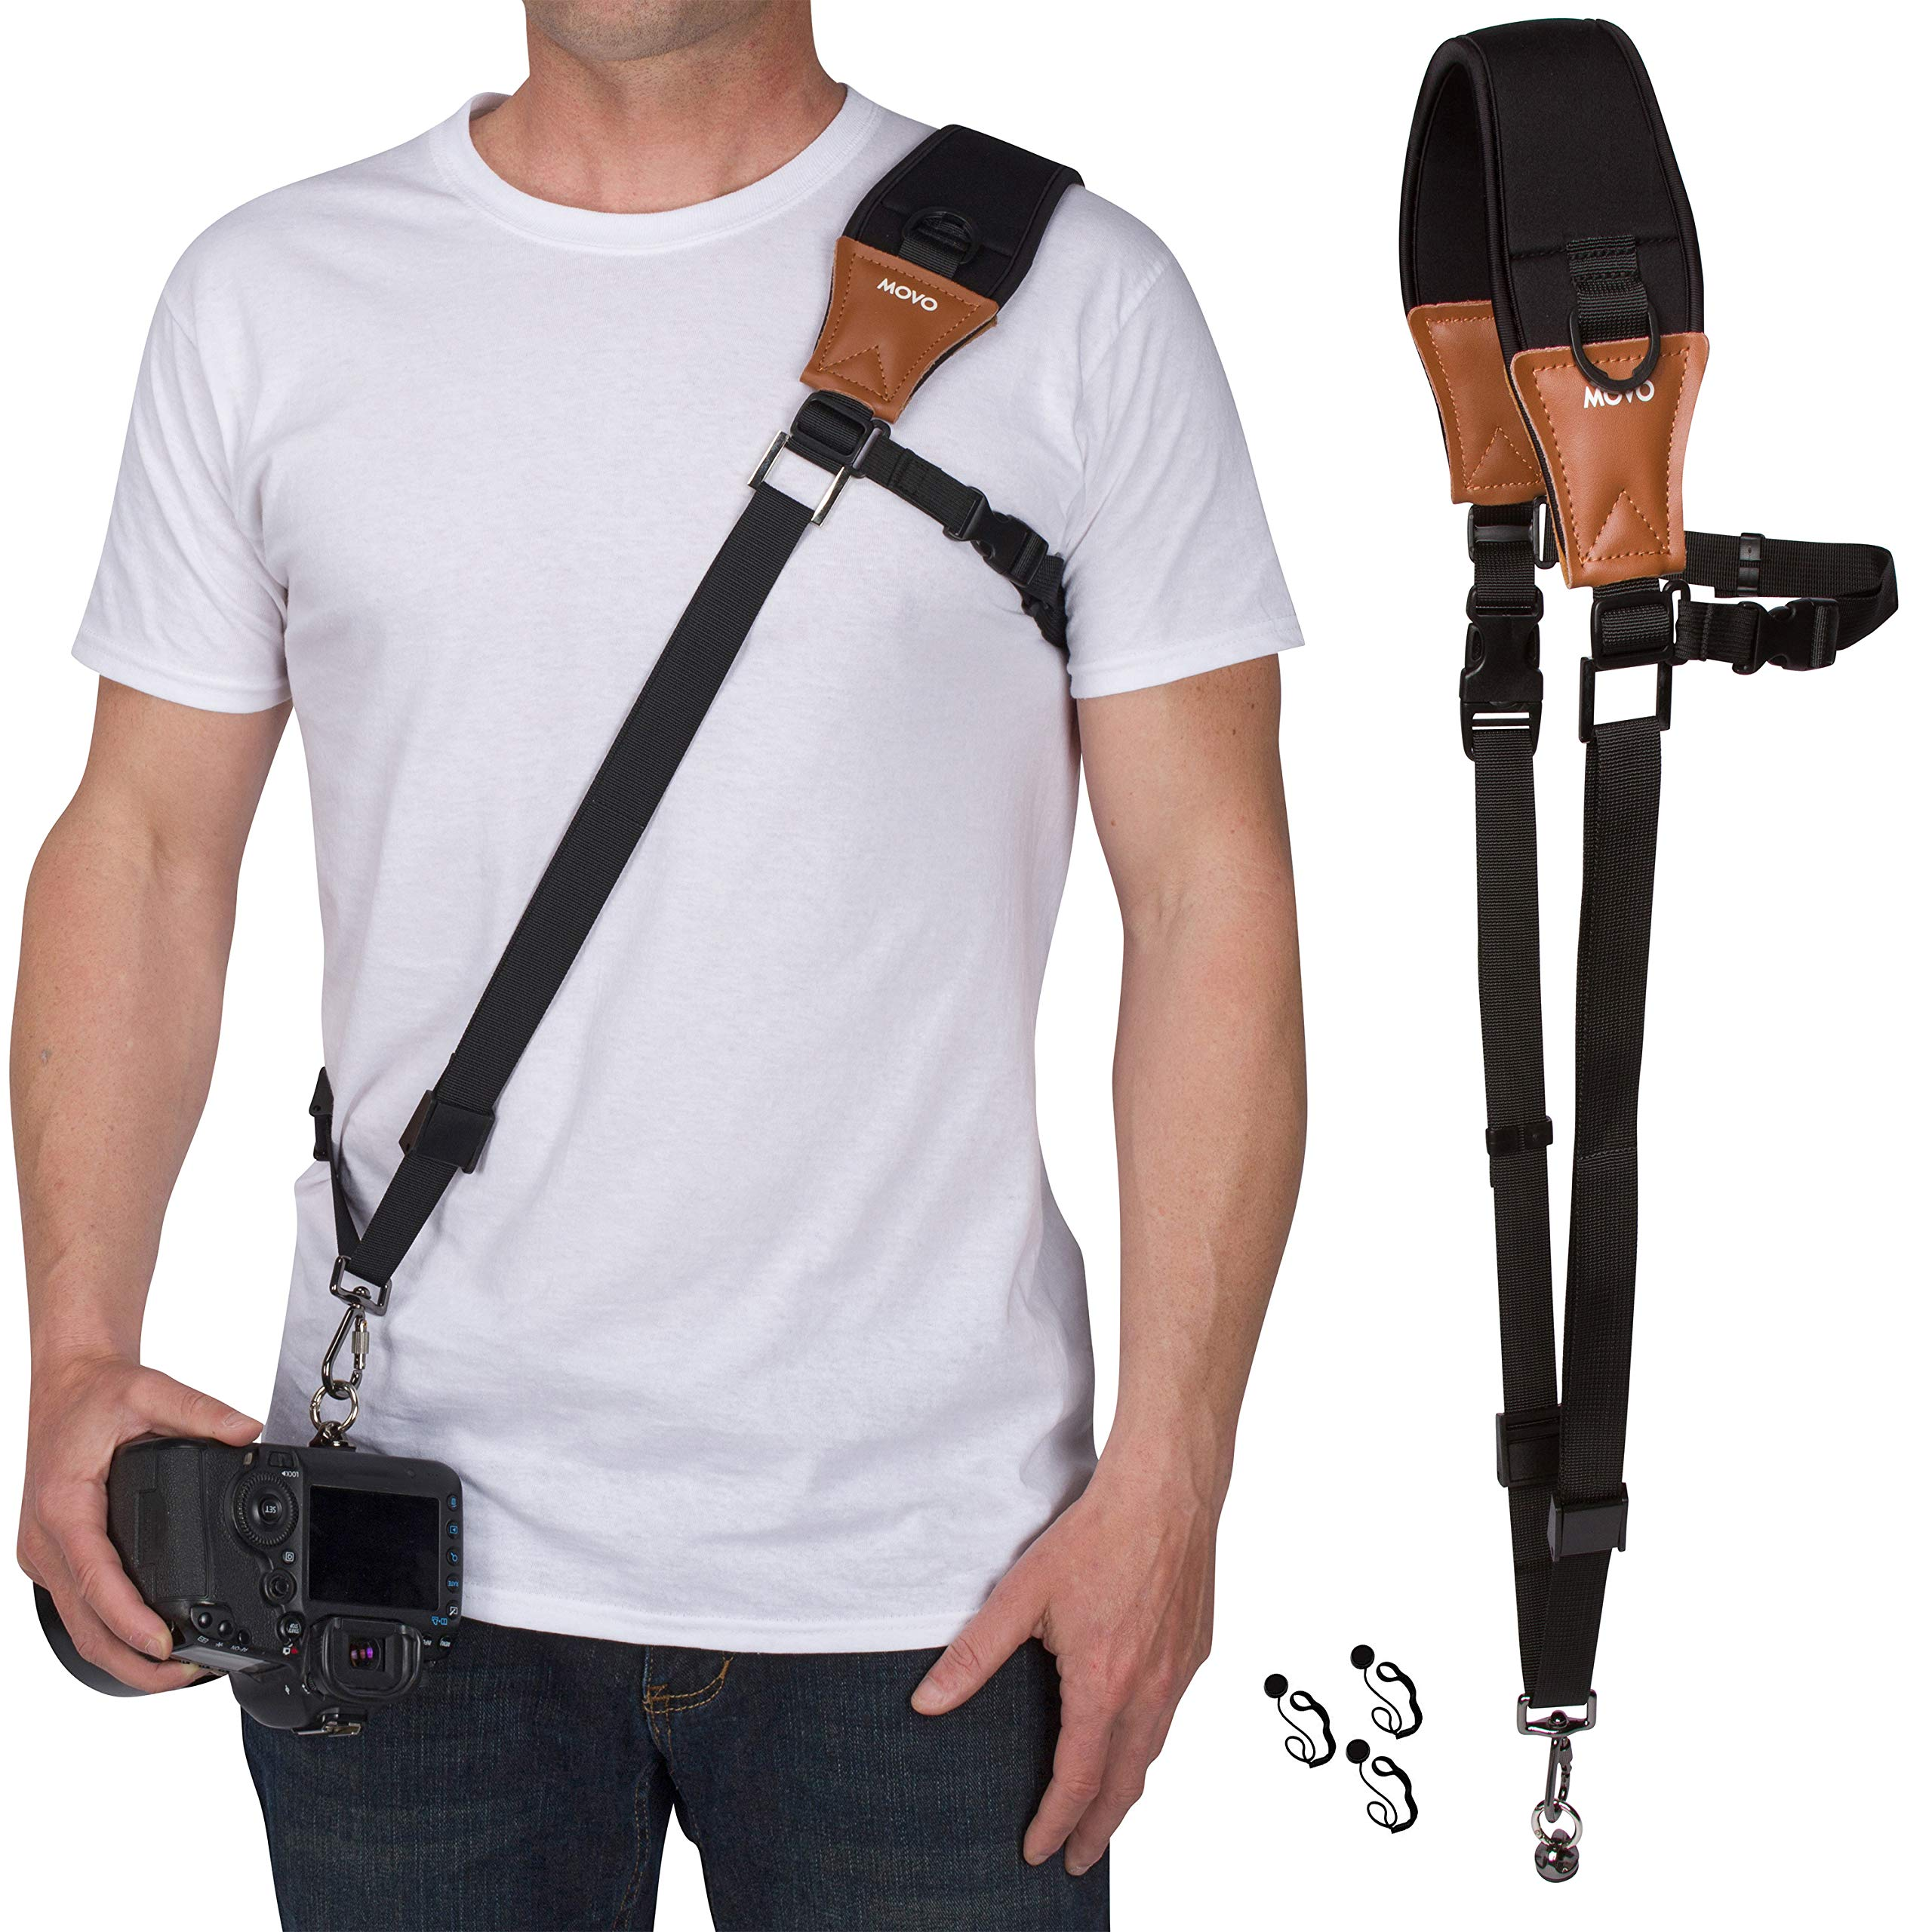 Movo MP-SS7 V2 Rapid Action Camera Sling Strap with Quick Release Clip, Neoprene Vintage Leather Shoulder Pad Cushion and Bonus Lens Cap Holders for DSLR, Mirrorless Cameras and Binoculars